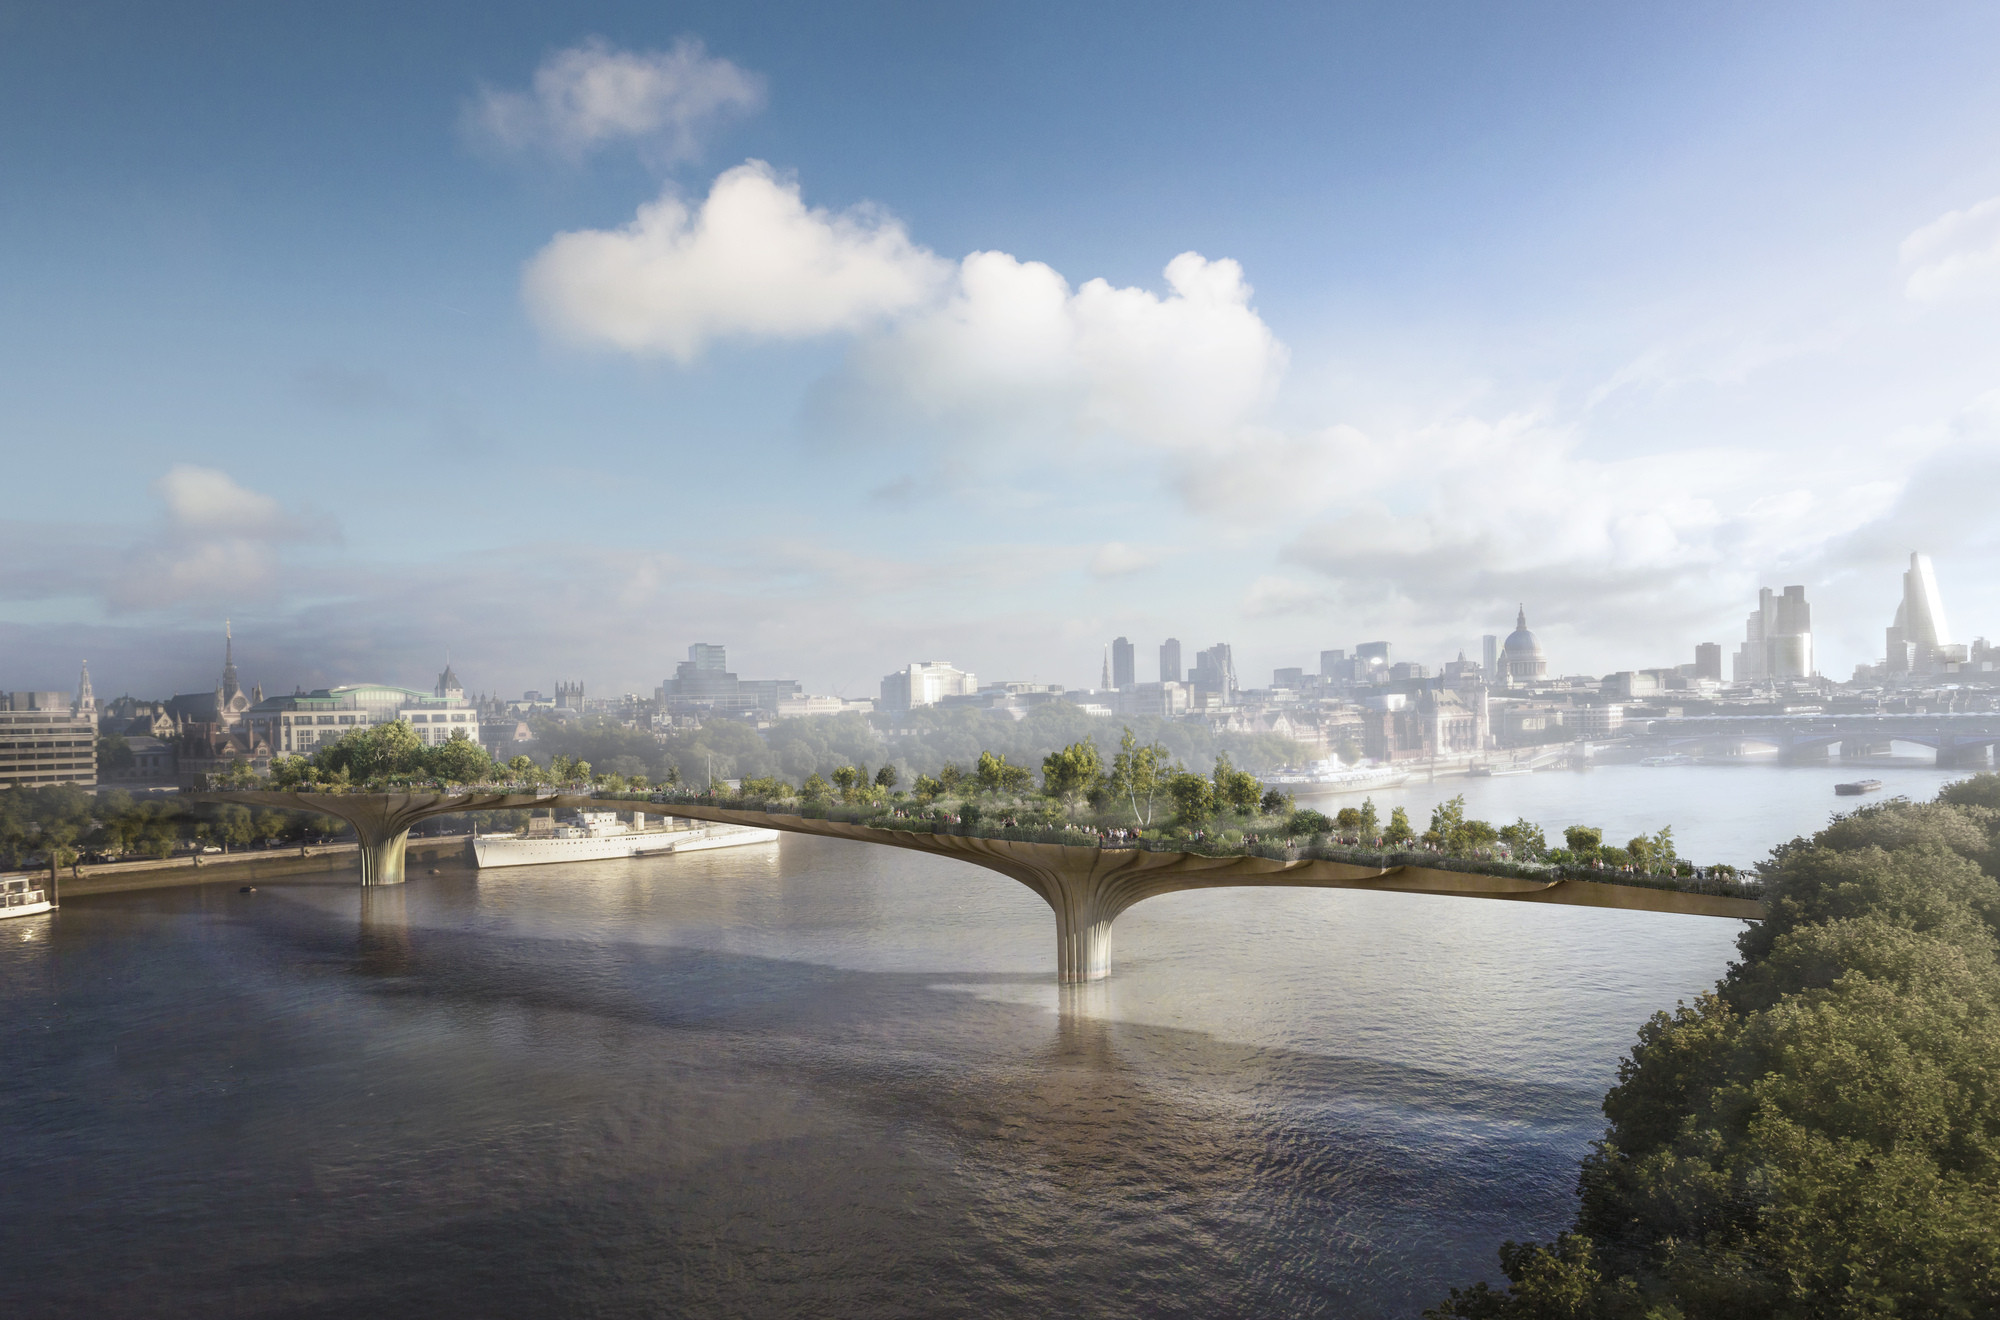 London Calling: The 'Practical' Architect, Thomas Heatherwick and Arup's plans for a new, 367-meter long 'Garden Bridge' that will span the river from Temple to the Southbank (more renderings at http://www.archdaily.com/389848/thomas-heatherwick-designs-garden-bridge-in-london/). Image Courtesy of Arup